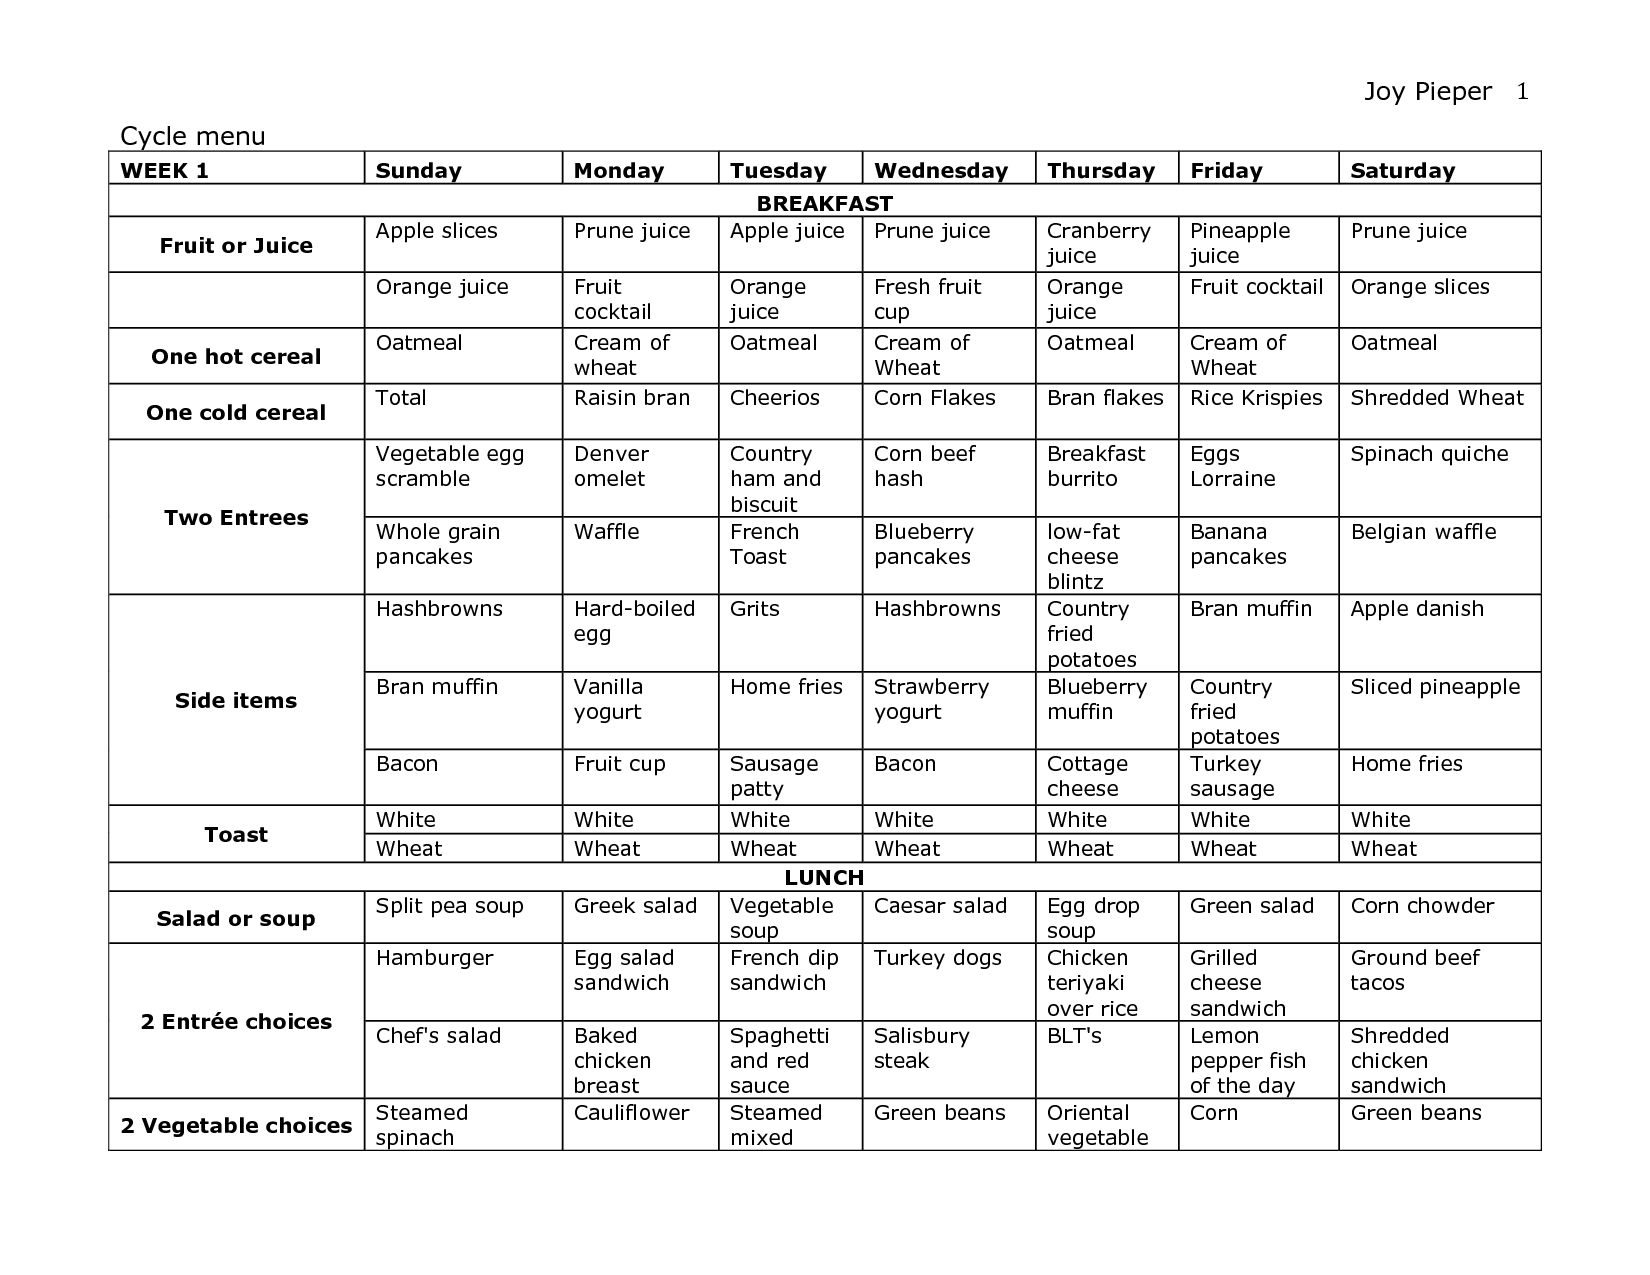 Cycle Menu Template | Cycle Menu Week 1 Sunday Monday within Cycle Menu Template